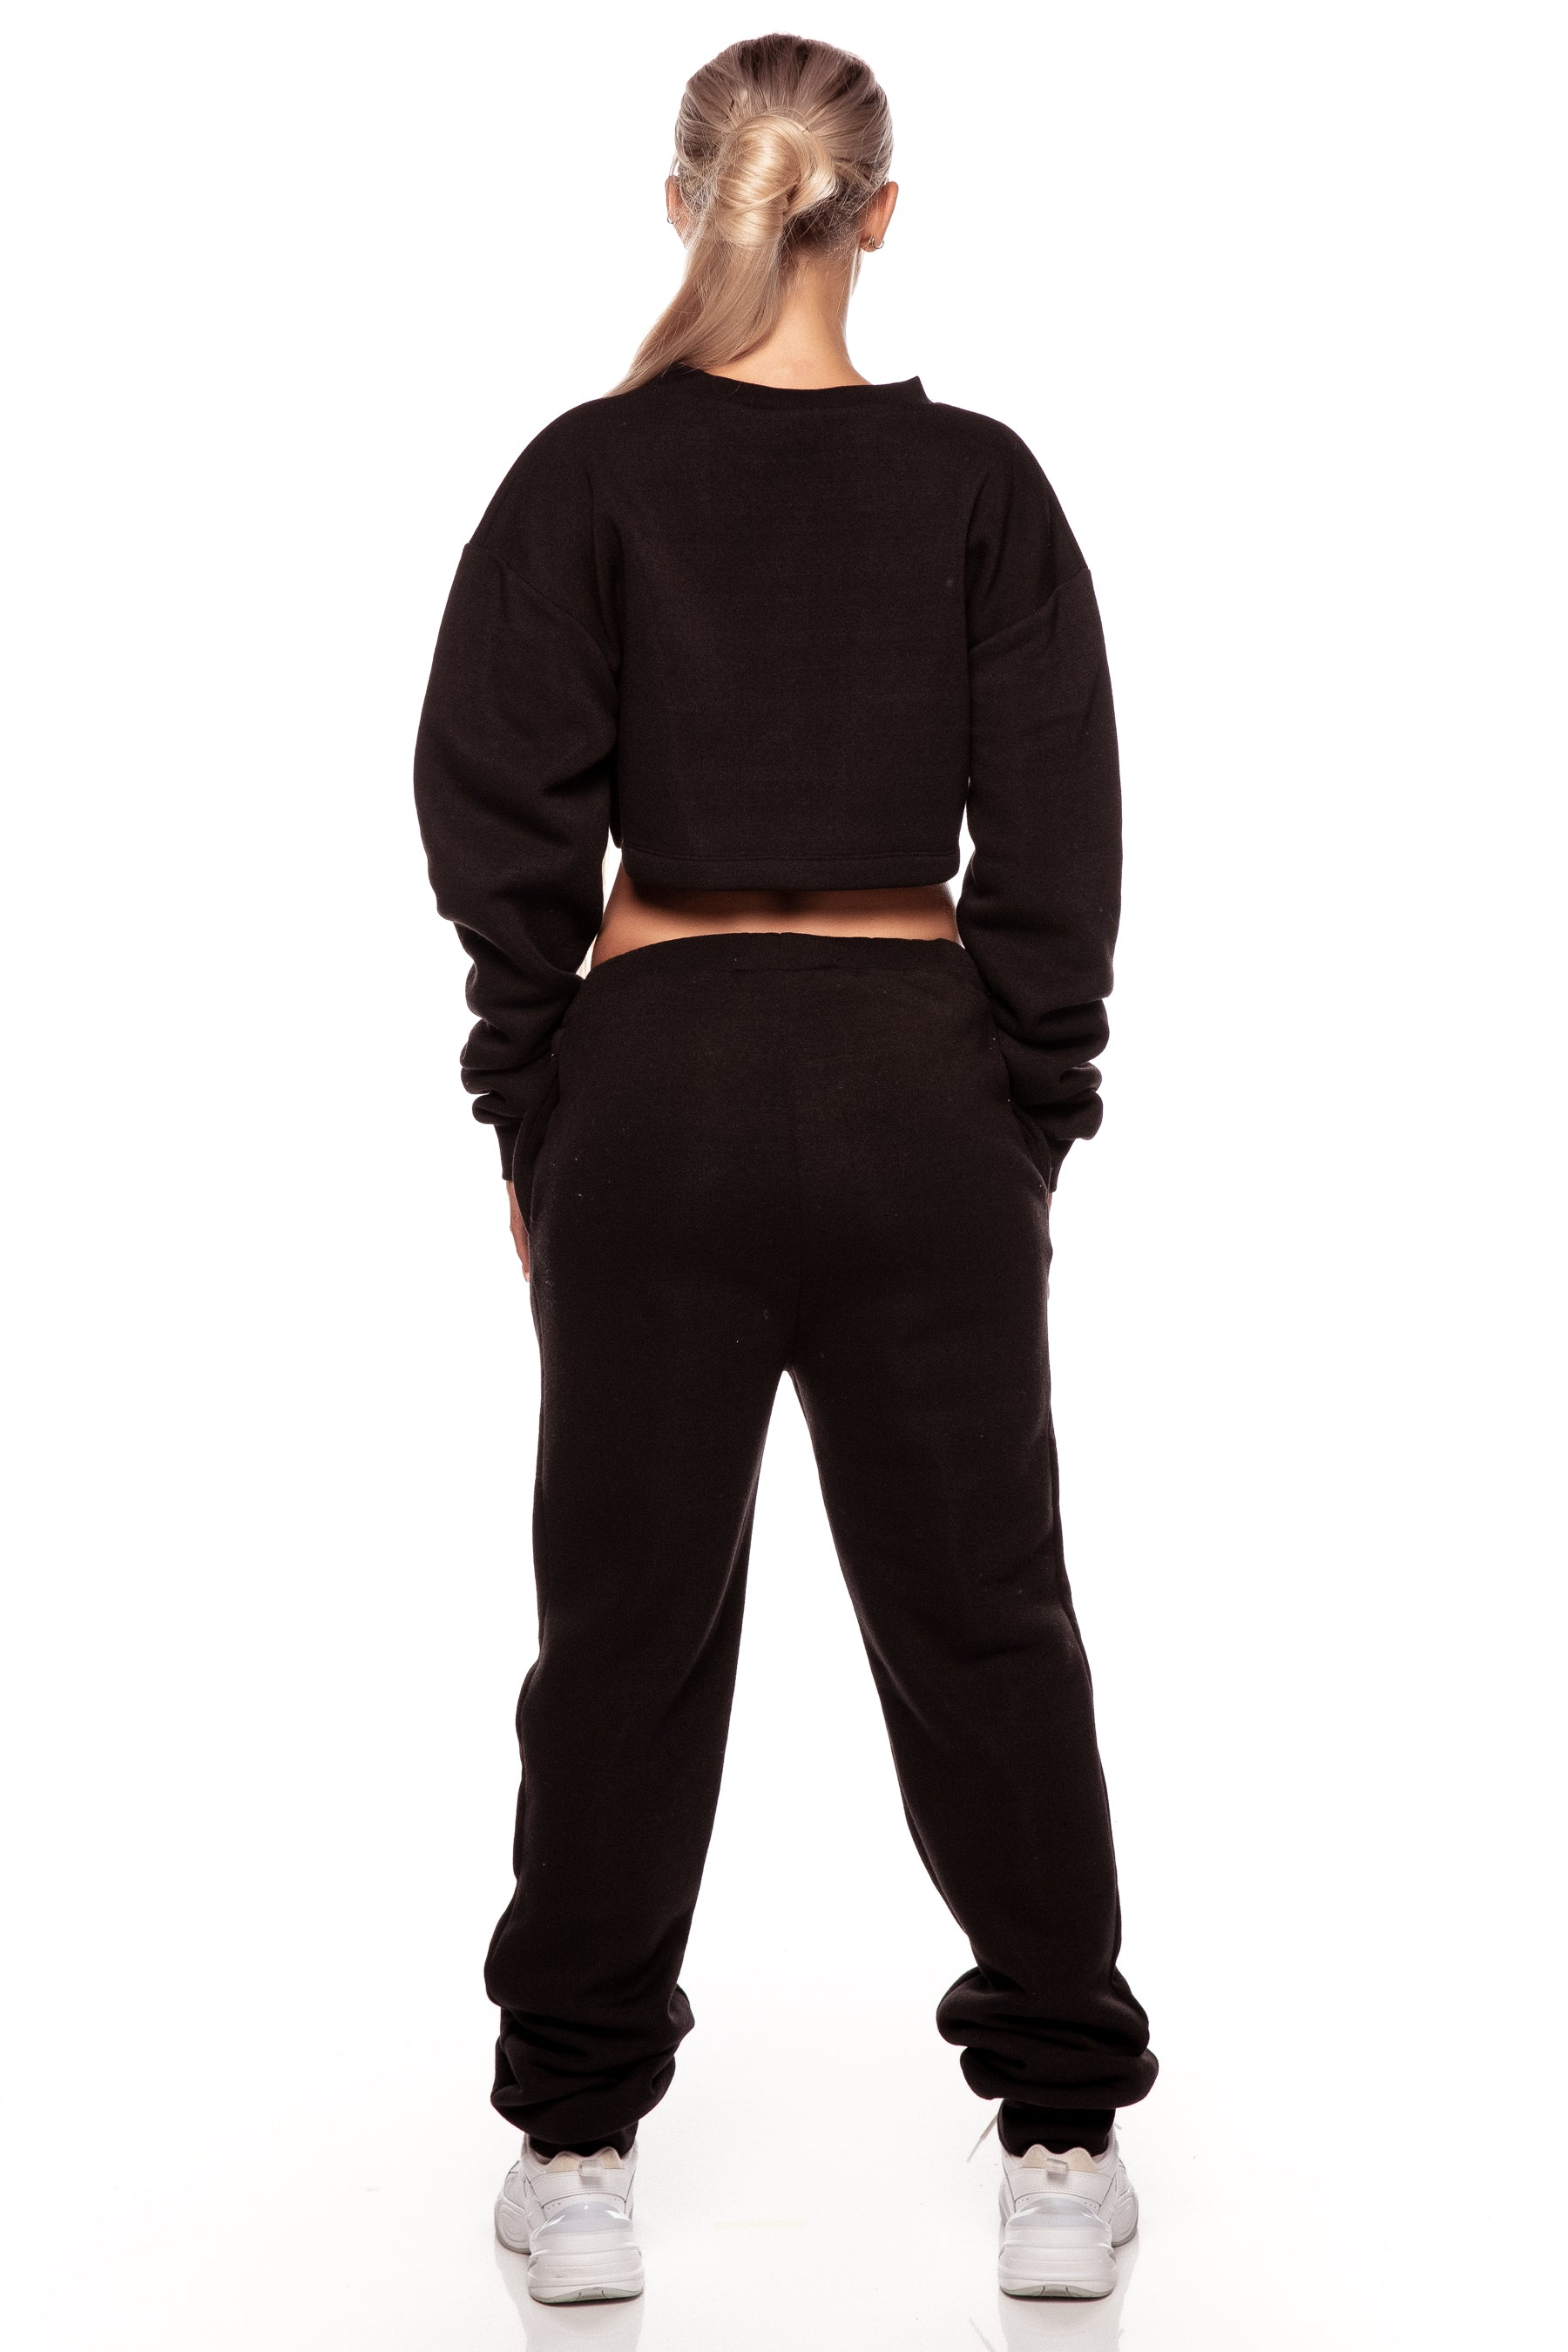 Black Fleece Sweats